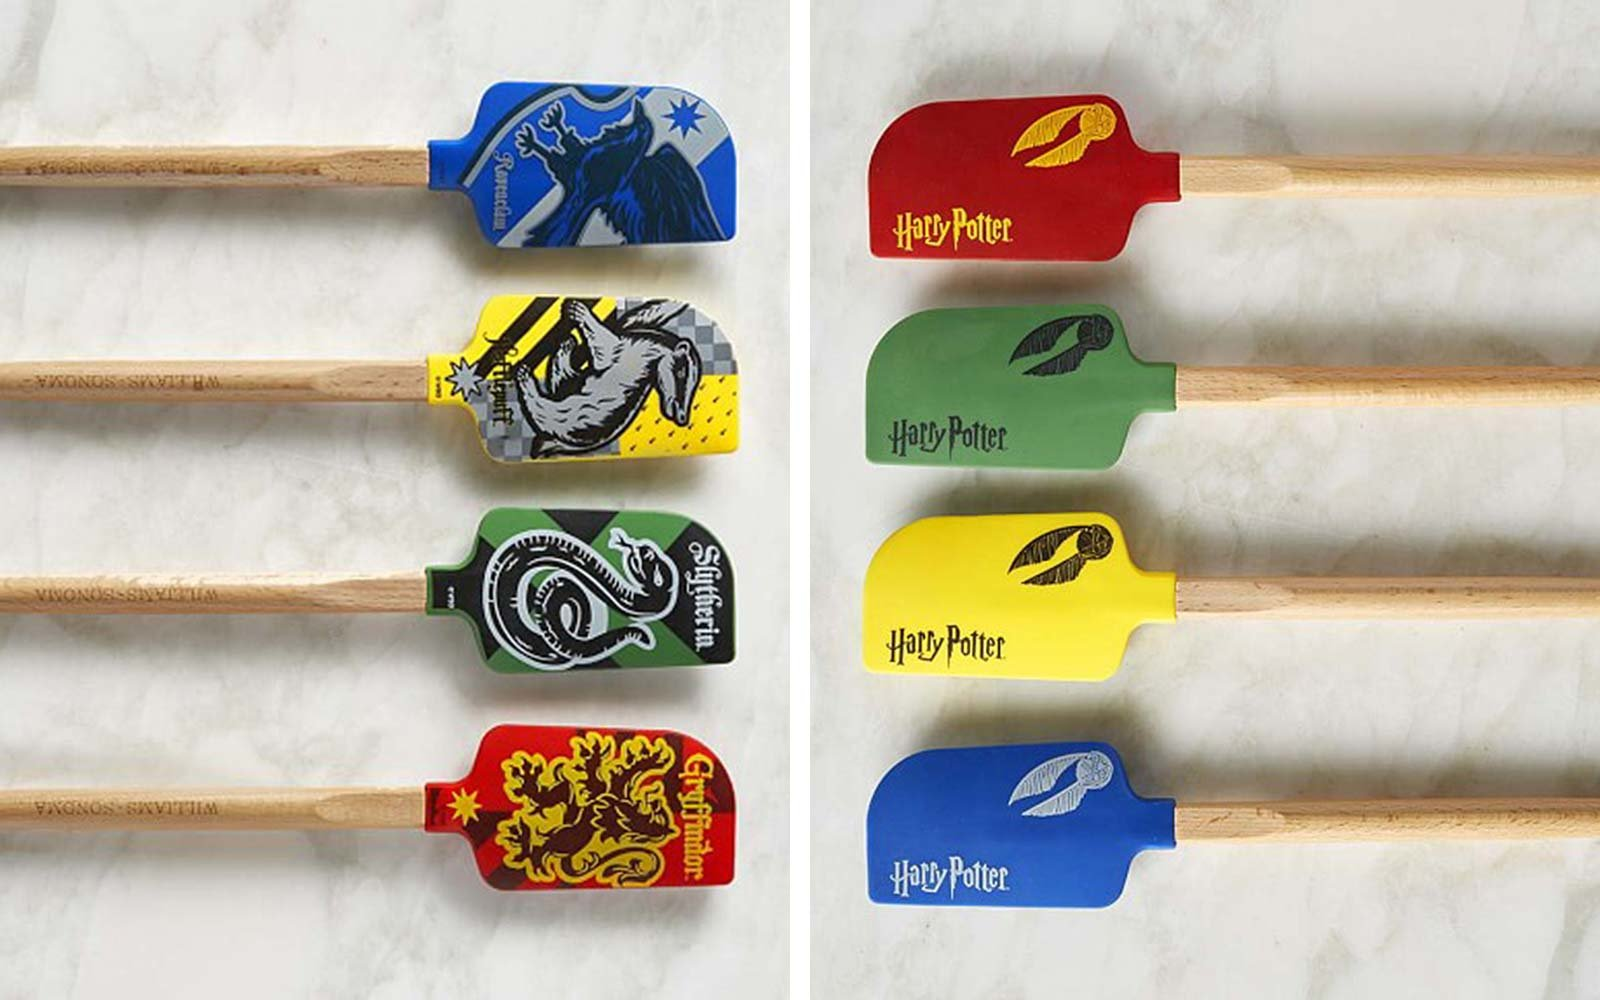 williams sonoma harry potter kitchen utensils spatula